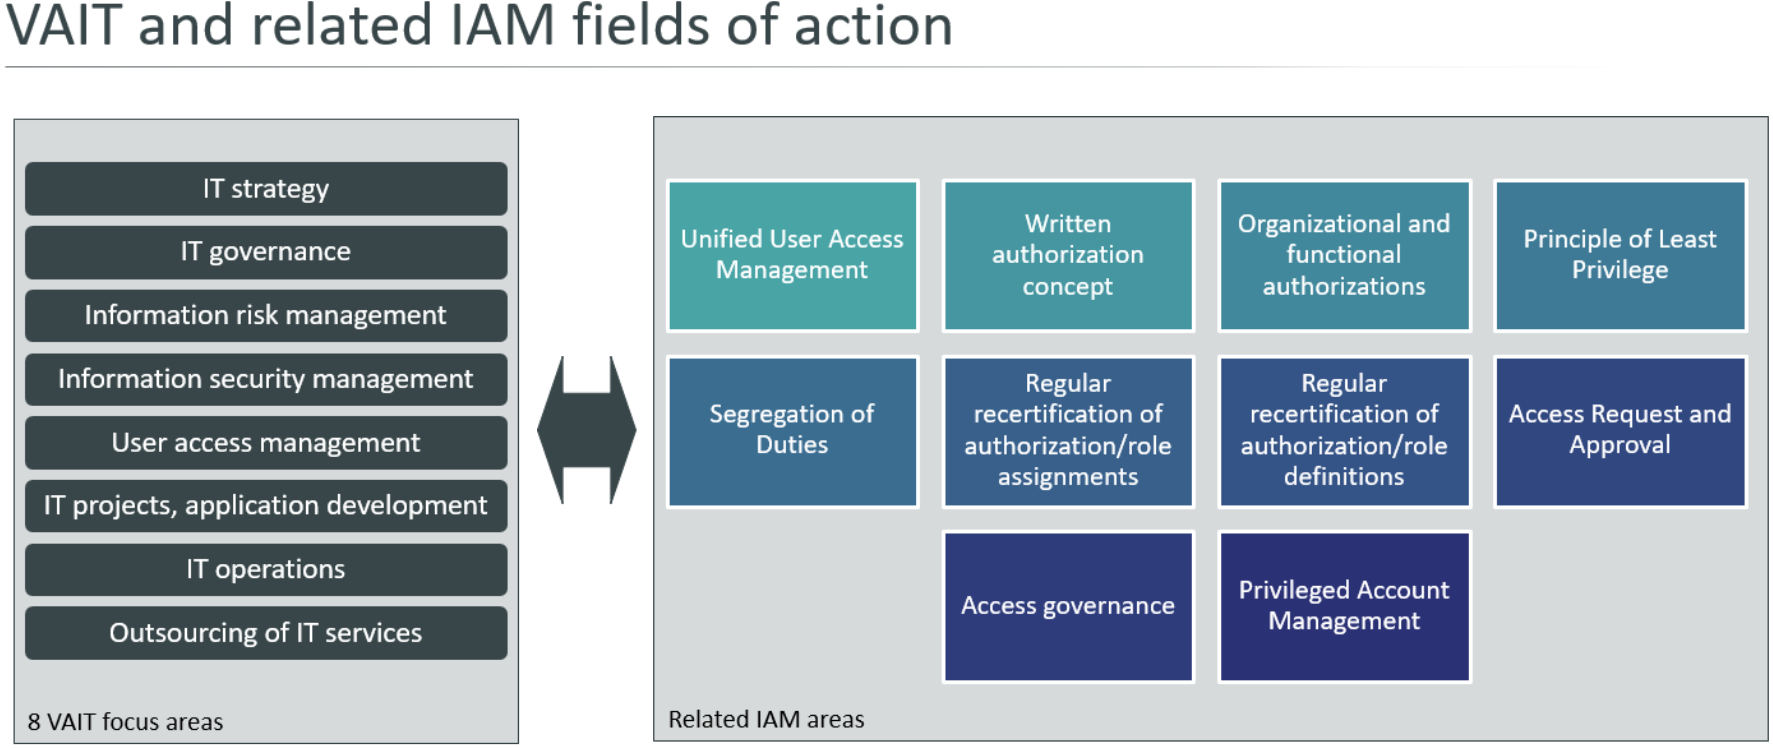 Figure 1: VAIT and related IAM/IAG fields of action